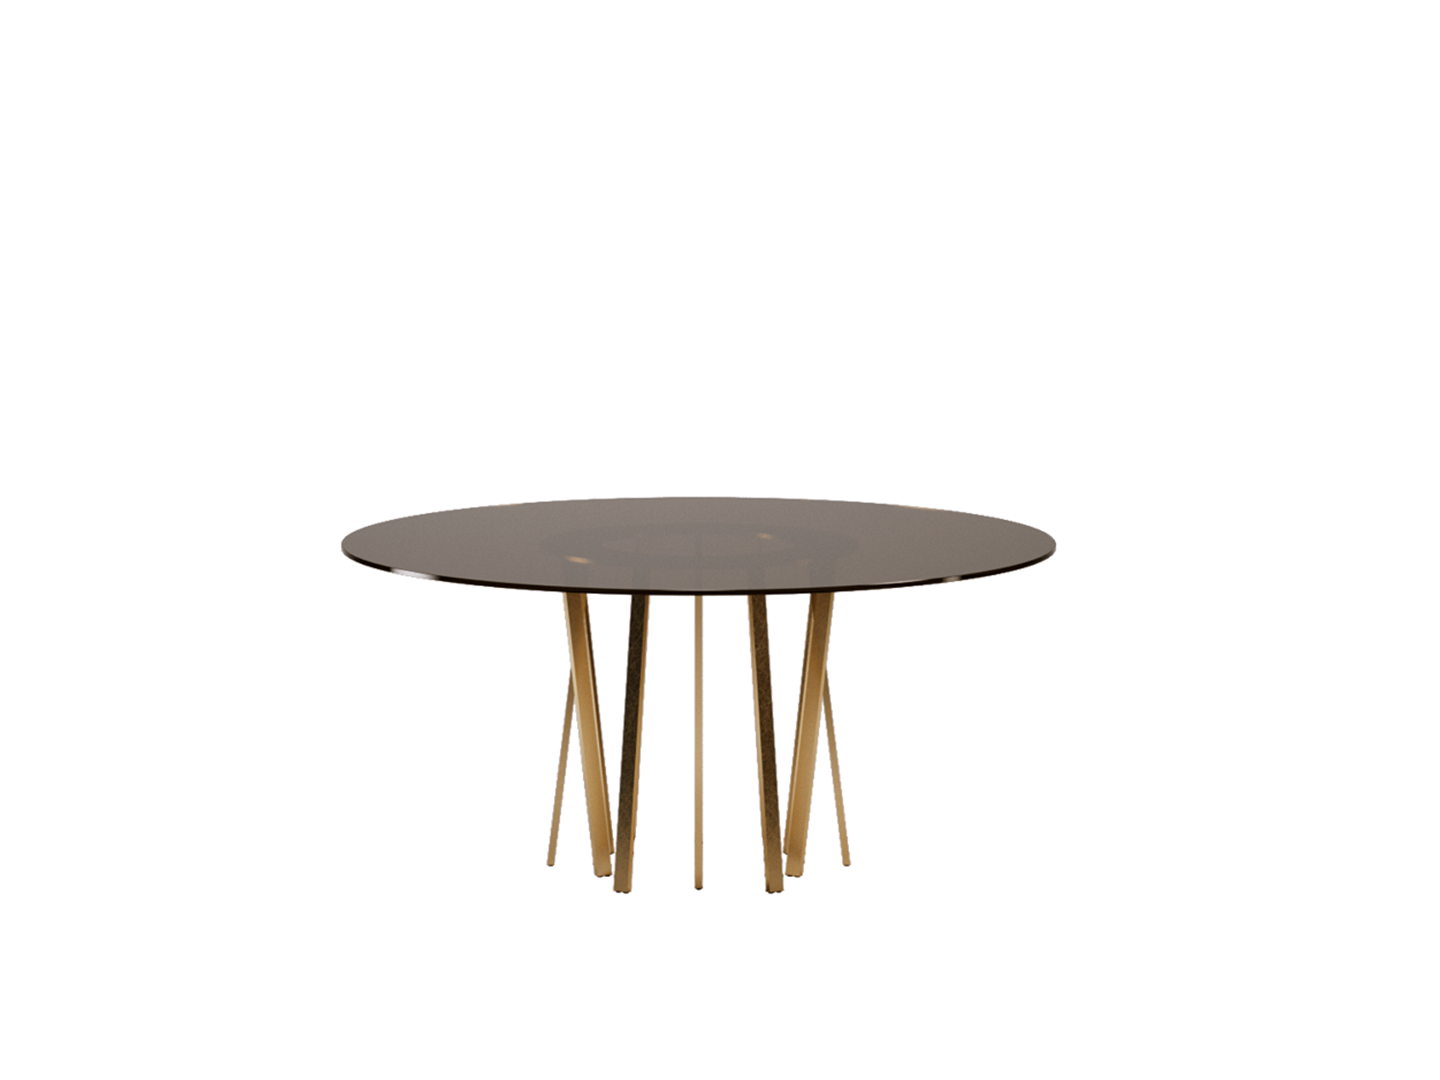 For Hall table circle